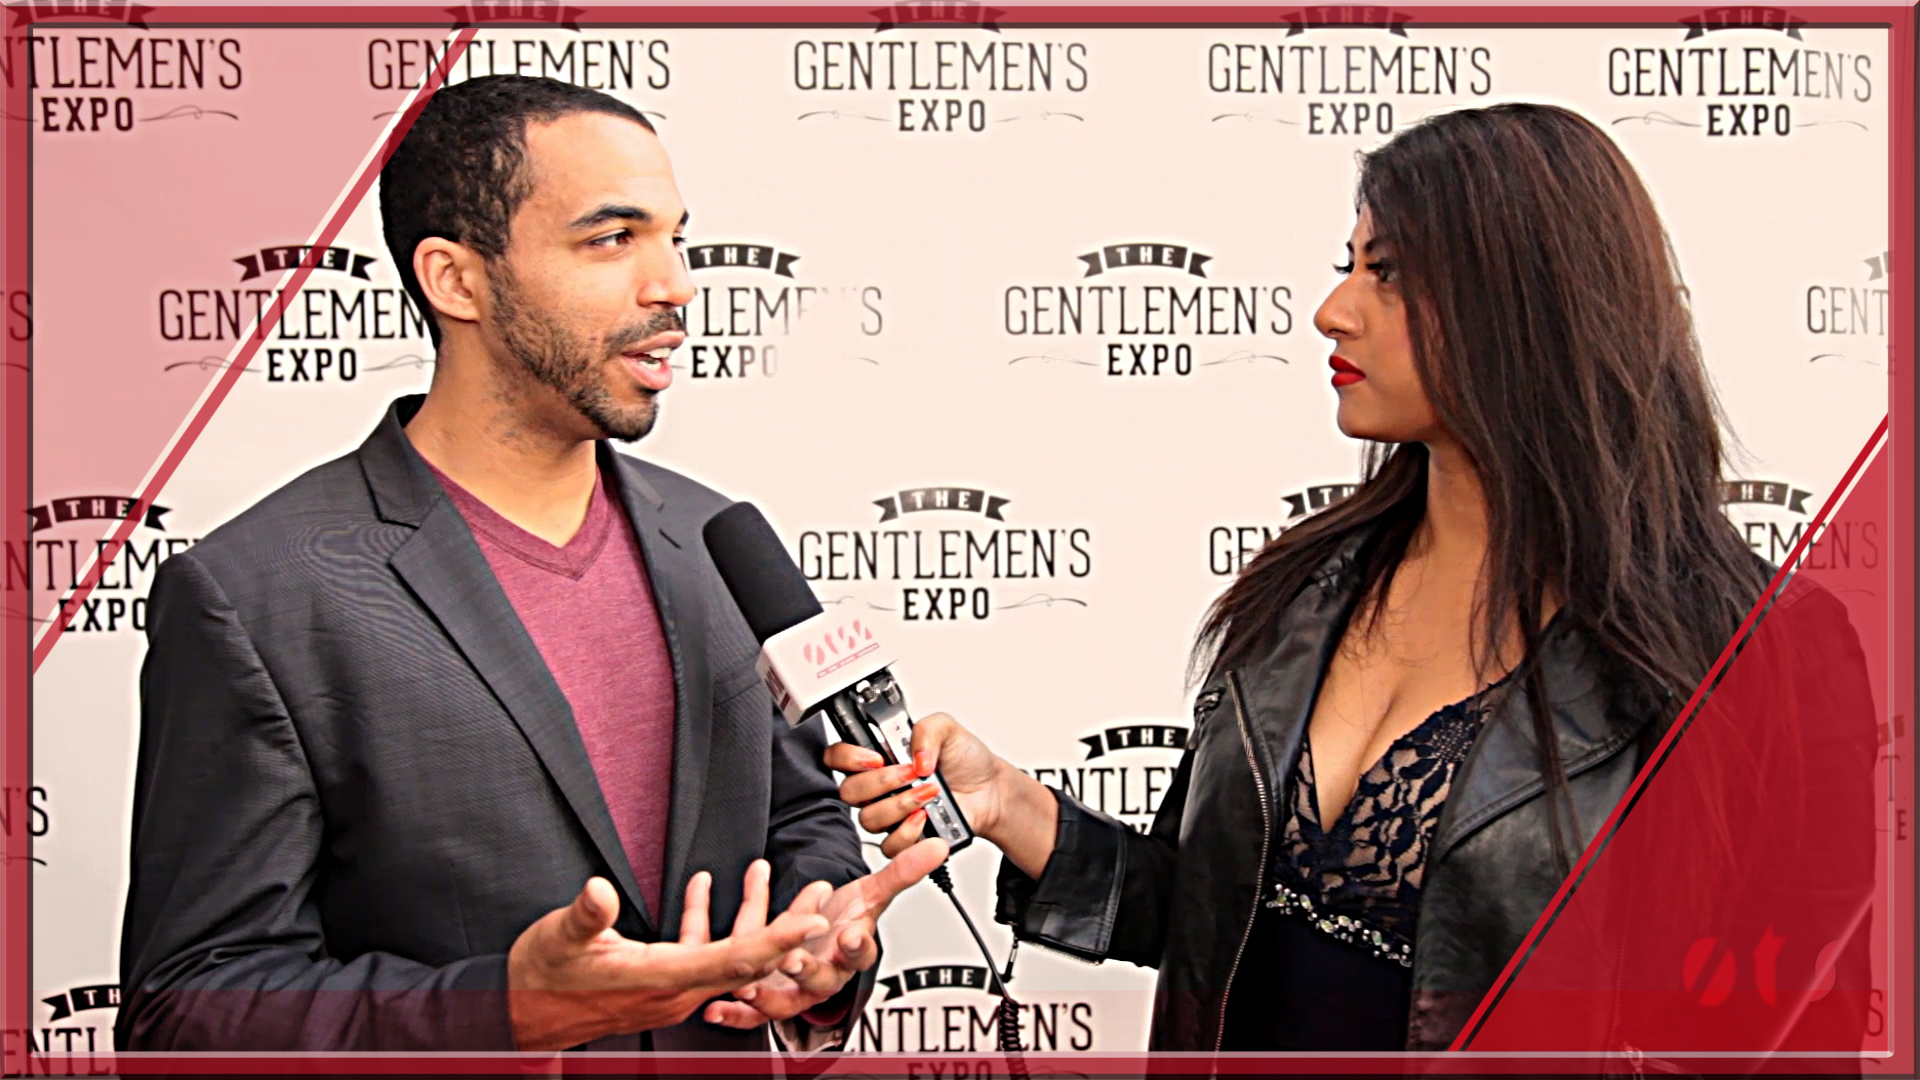 The Gentlemen's Expo 2015 with Chris Jones